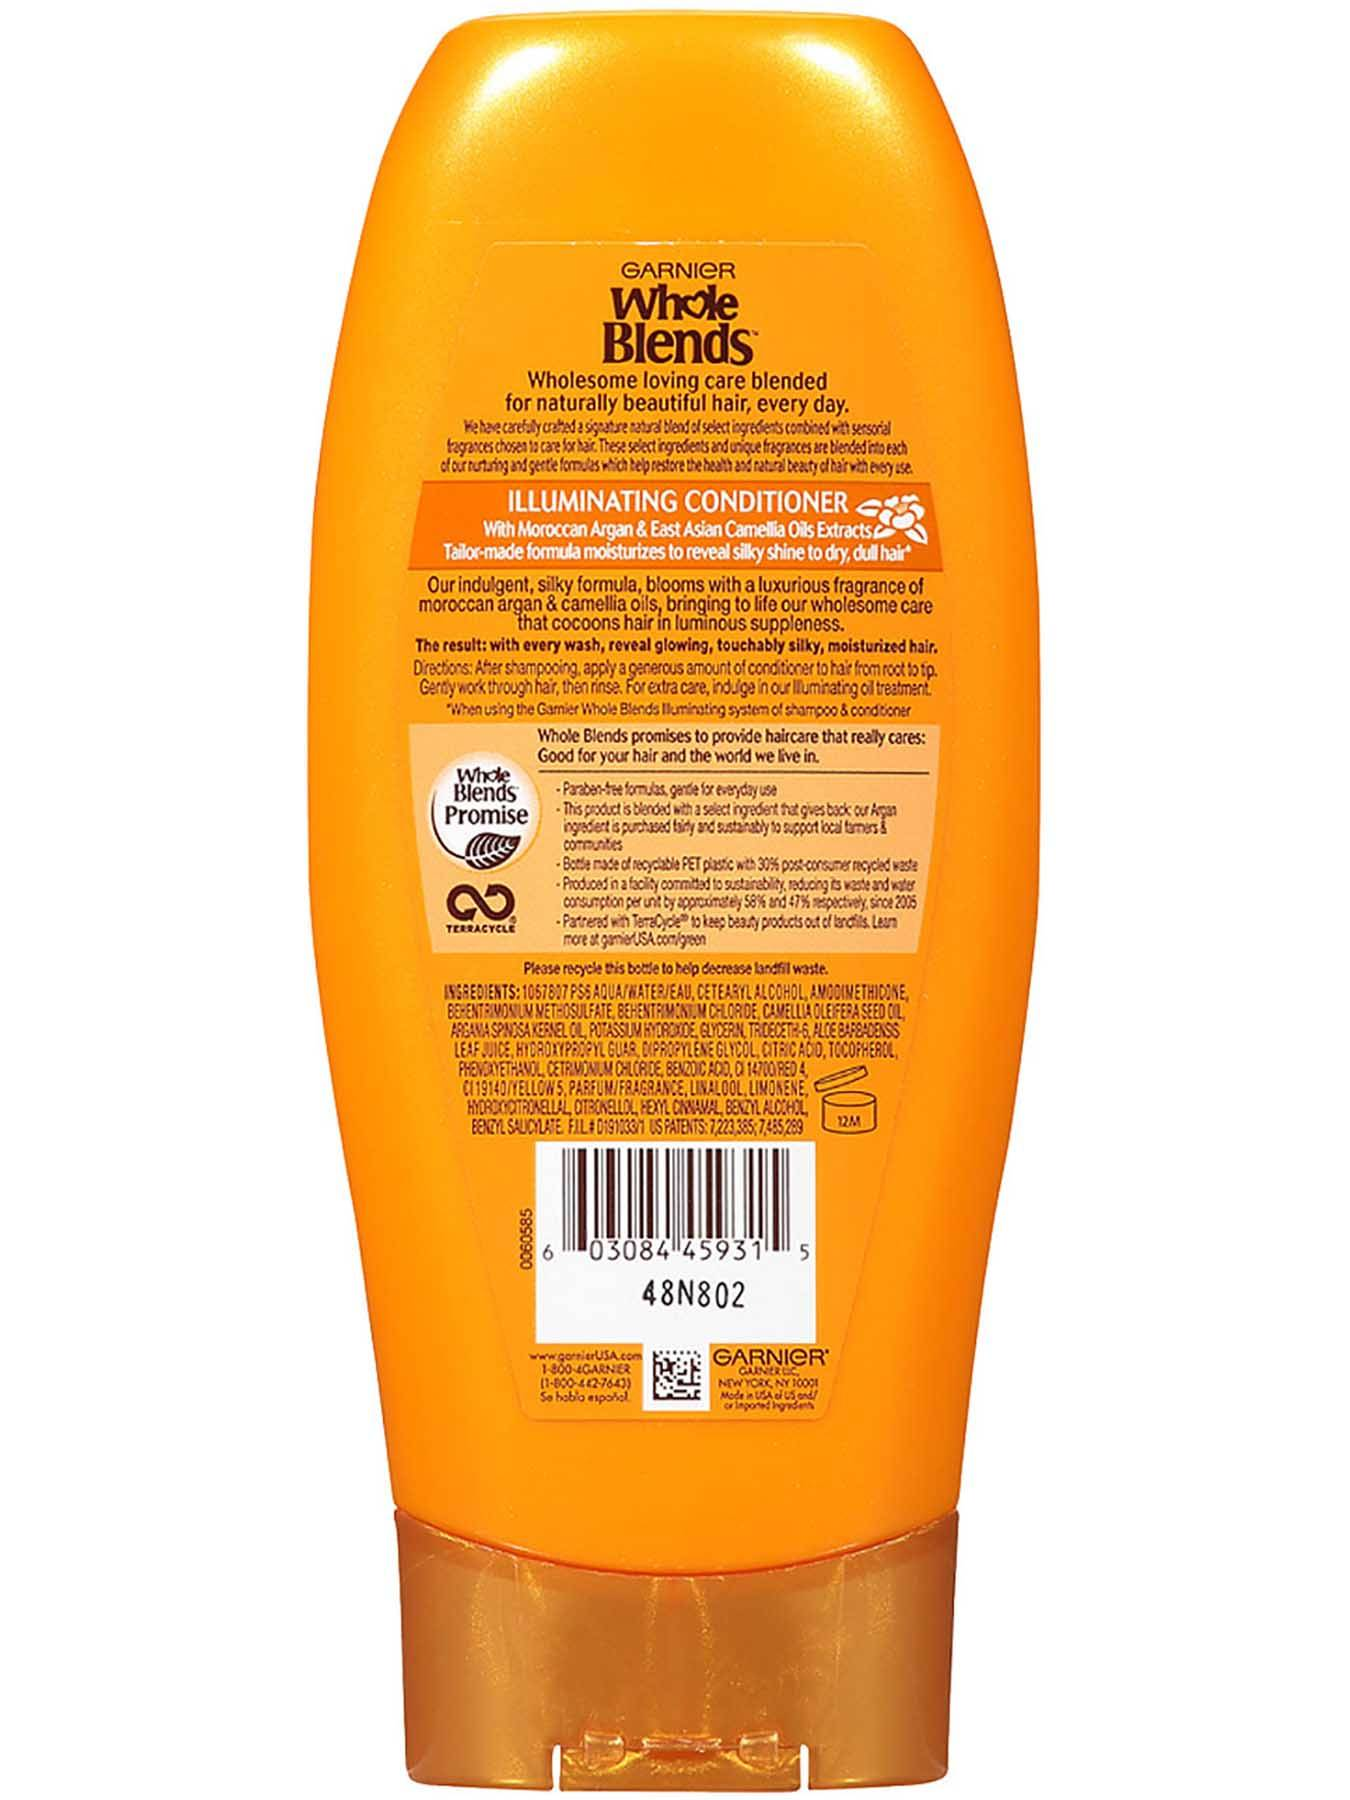 Garnier Whole Blends Illuminating Conditioner Moroccan Argan Camellia Oils Extracts Back Of Bottle